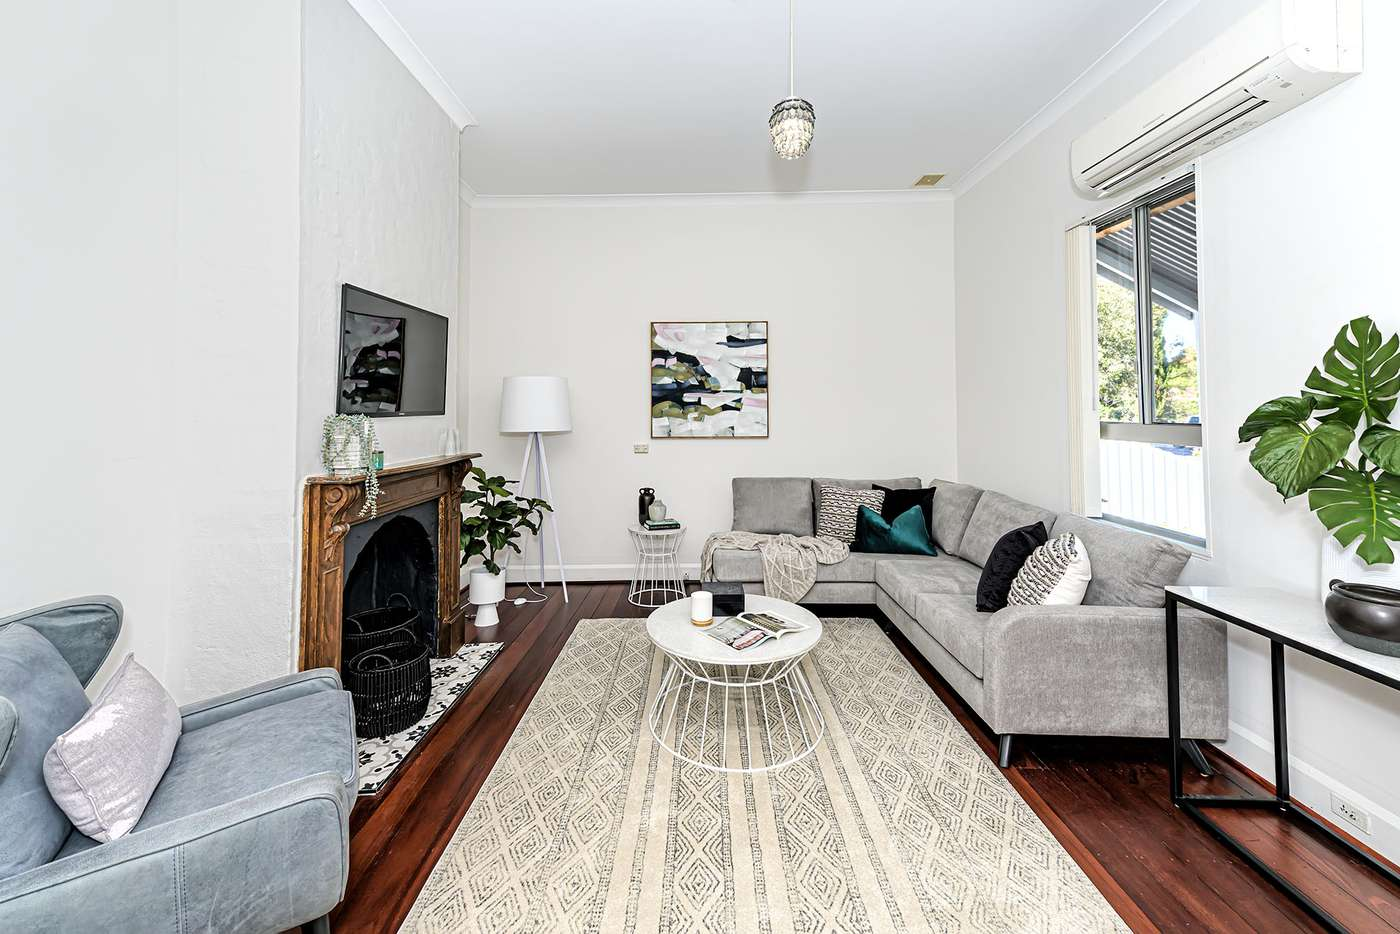 Seventh view of Homely house listing, 26 Aberdare Road, Shenton Park WA 6008